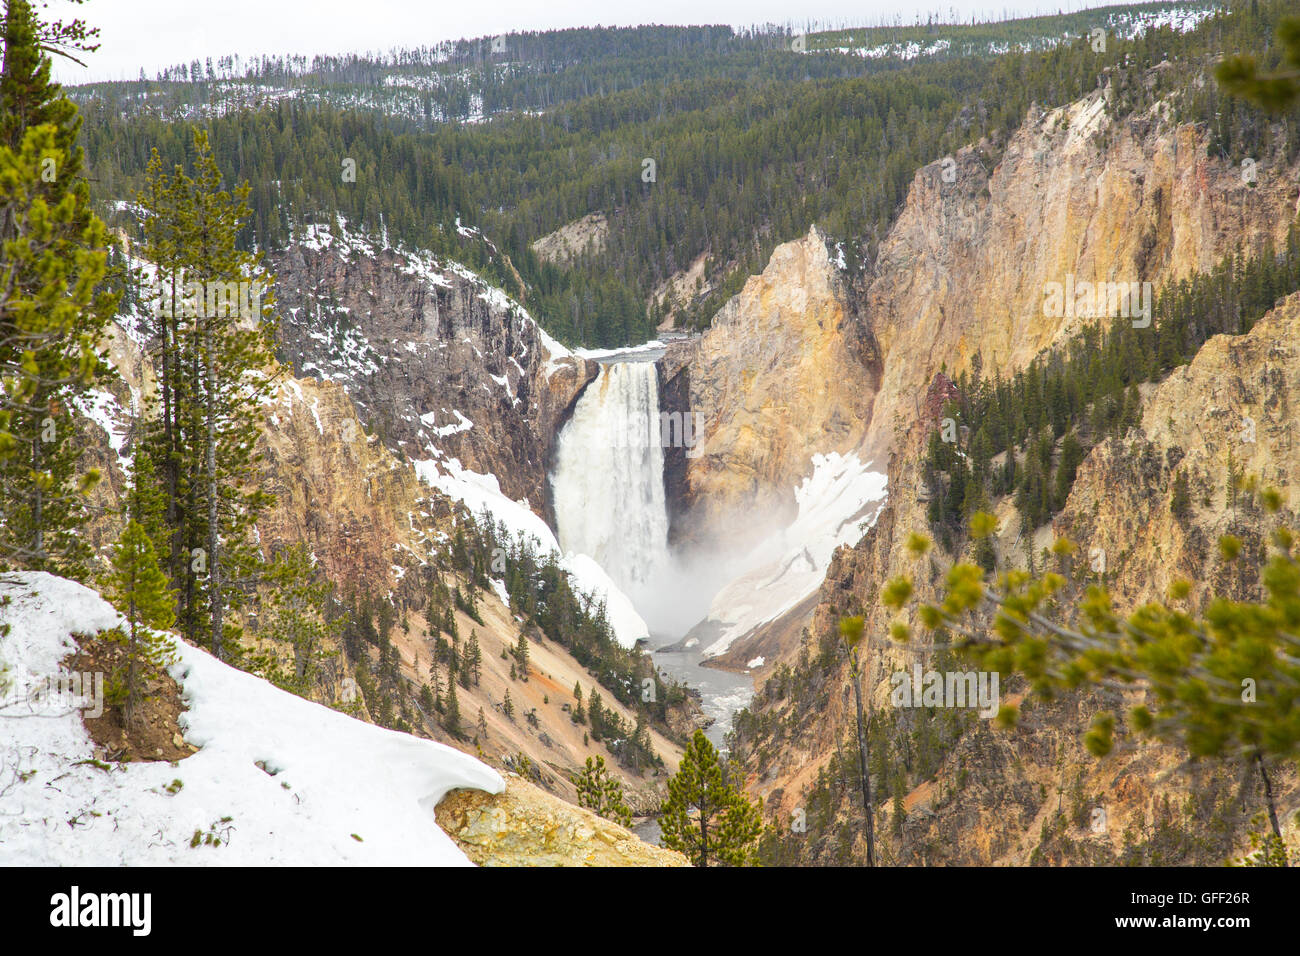 Waterfall in Yellowstone National Park USA - Stock Image